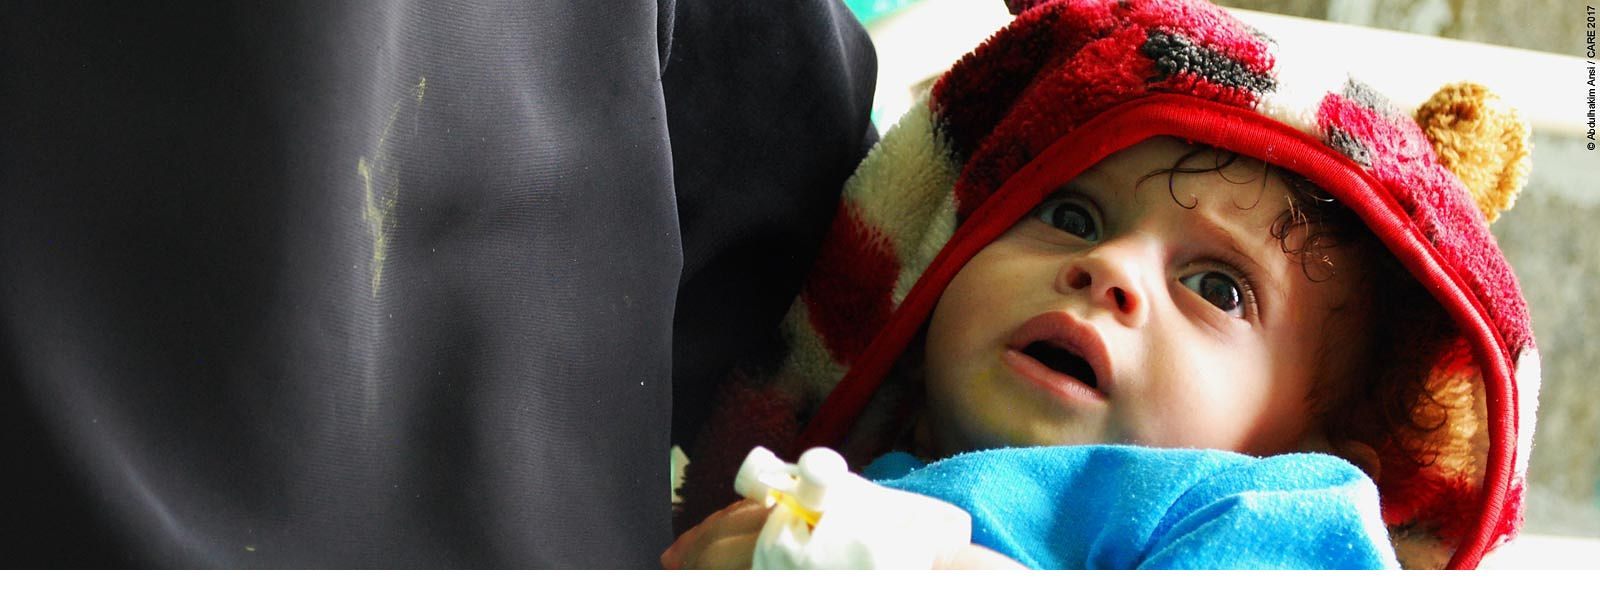 Baby recovering from cholera in Yemen